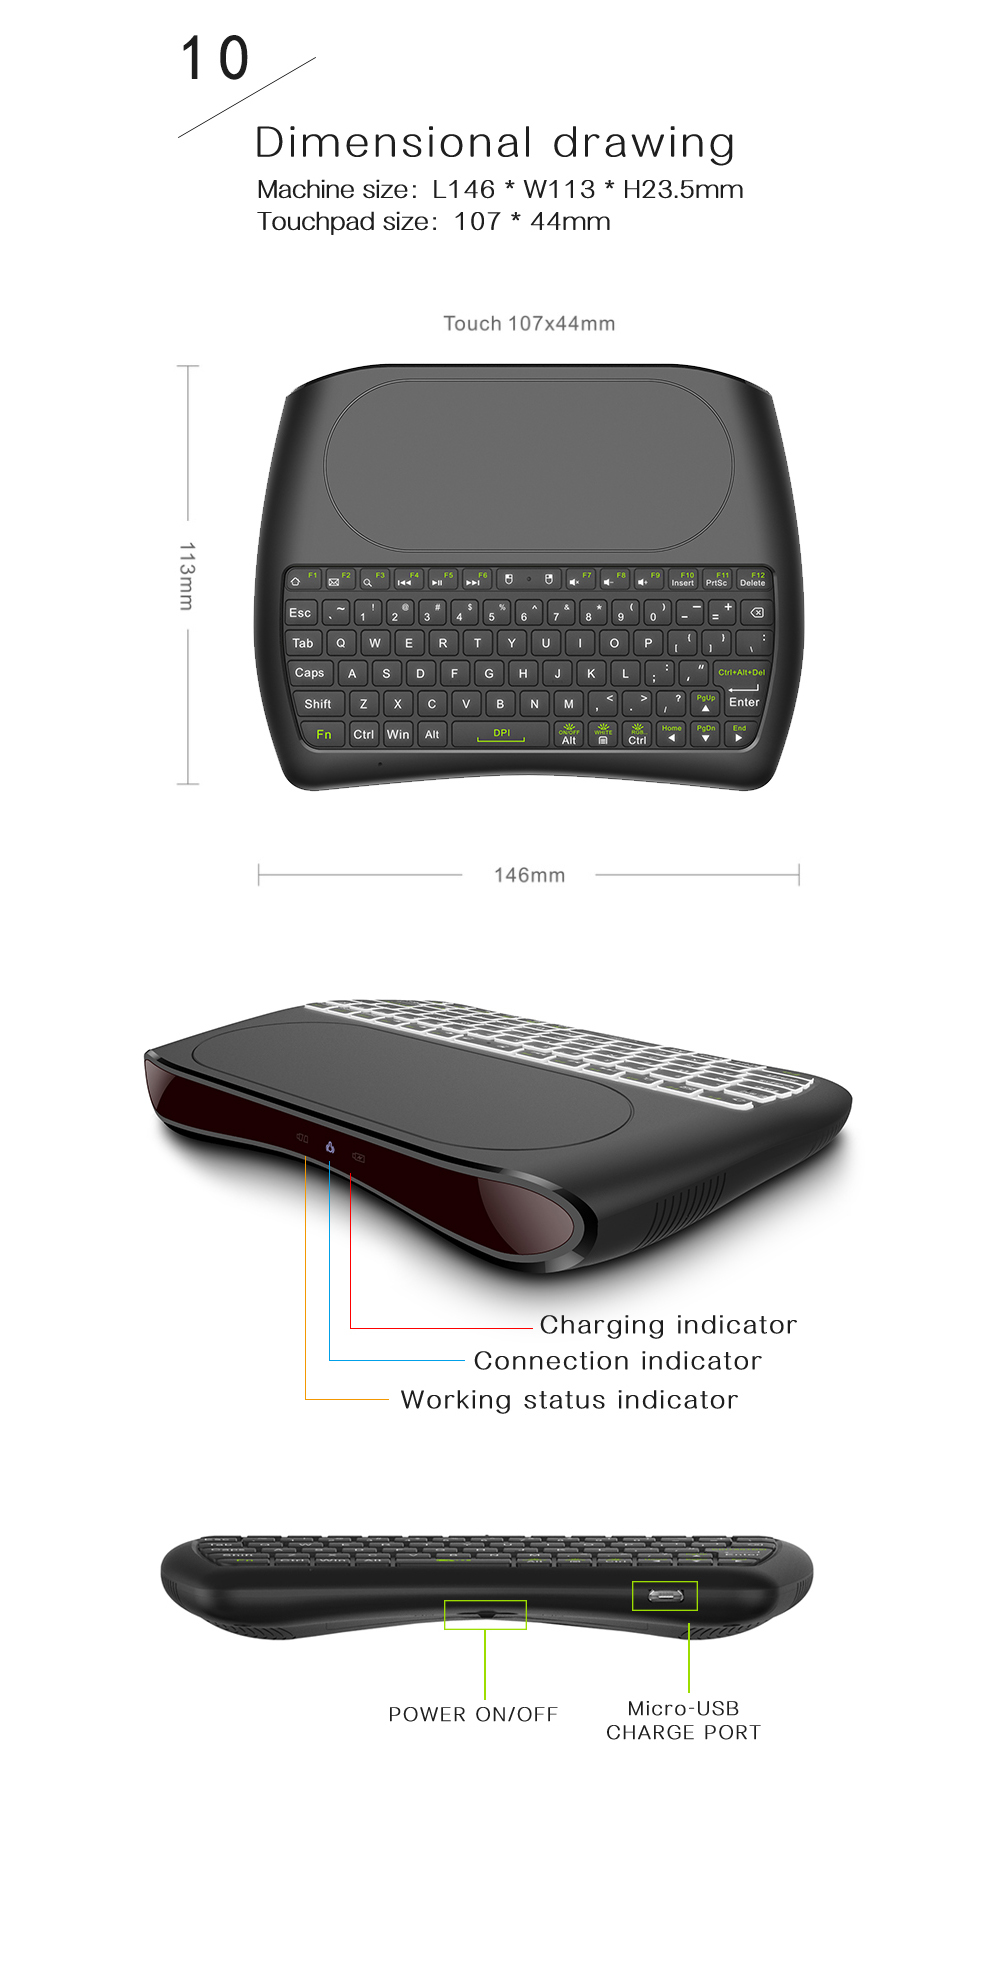 D8 Mini Air Mouse Large Screen Touchpad Mouse 2.4G Wireless Keyboard - Black Dry Battery Version